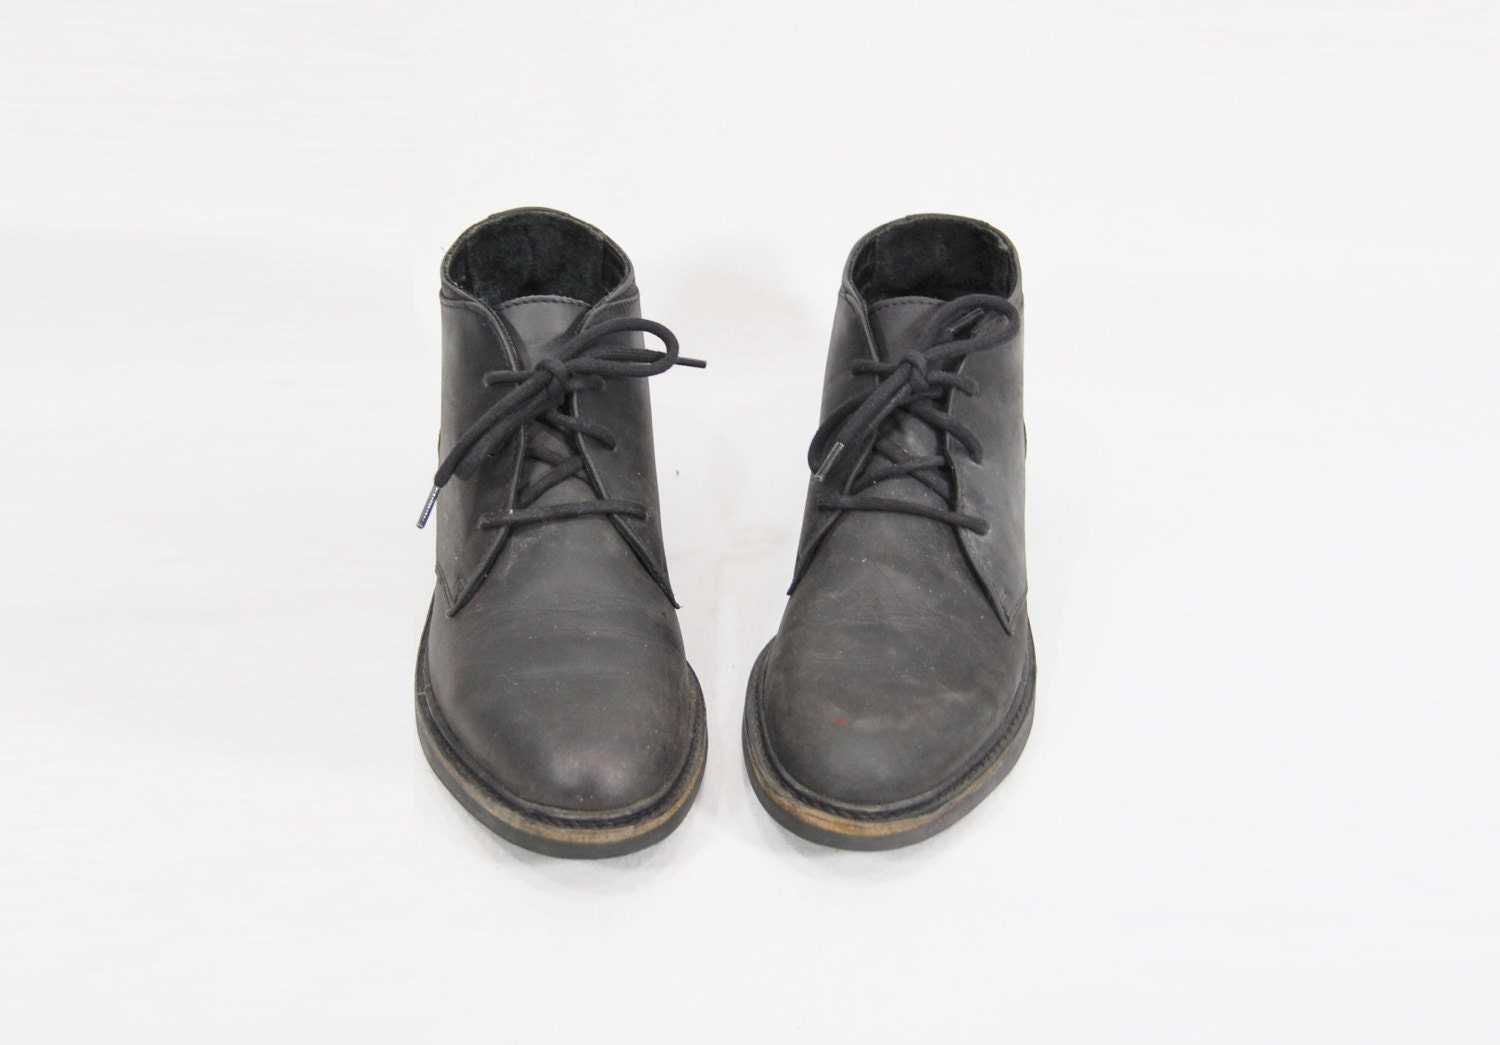 size 9 flat black ankle boots s timberland